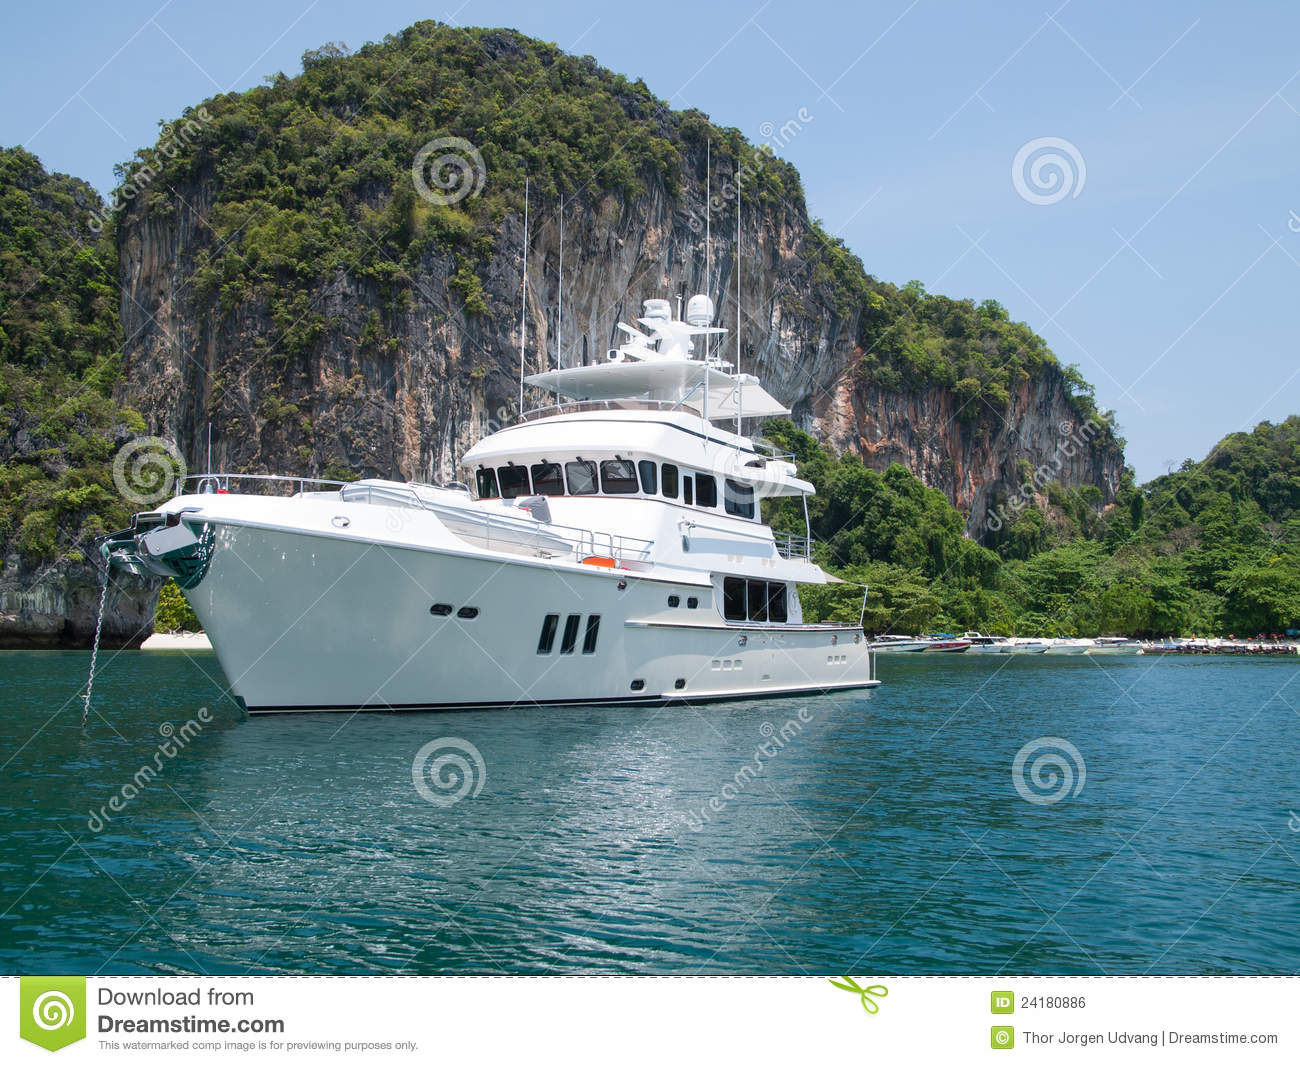 Yacht Island luxury yacht at tropical island royalty free stock image - image